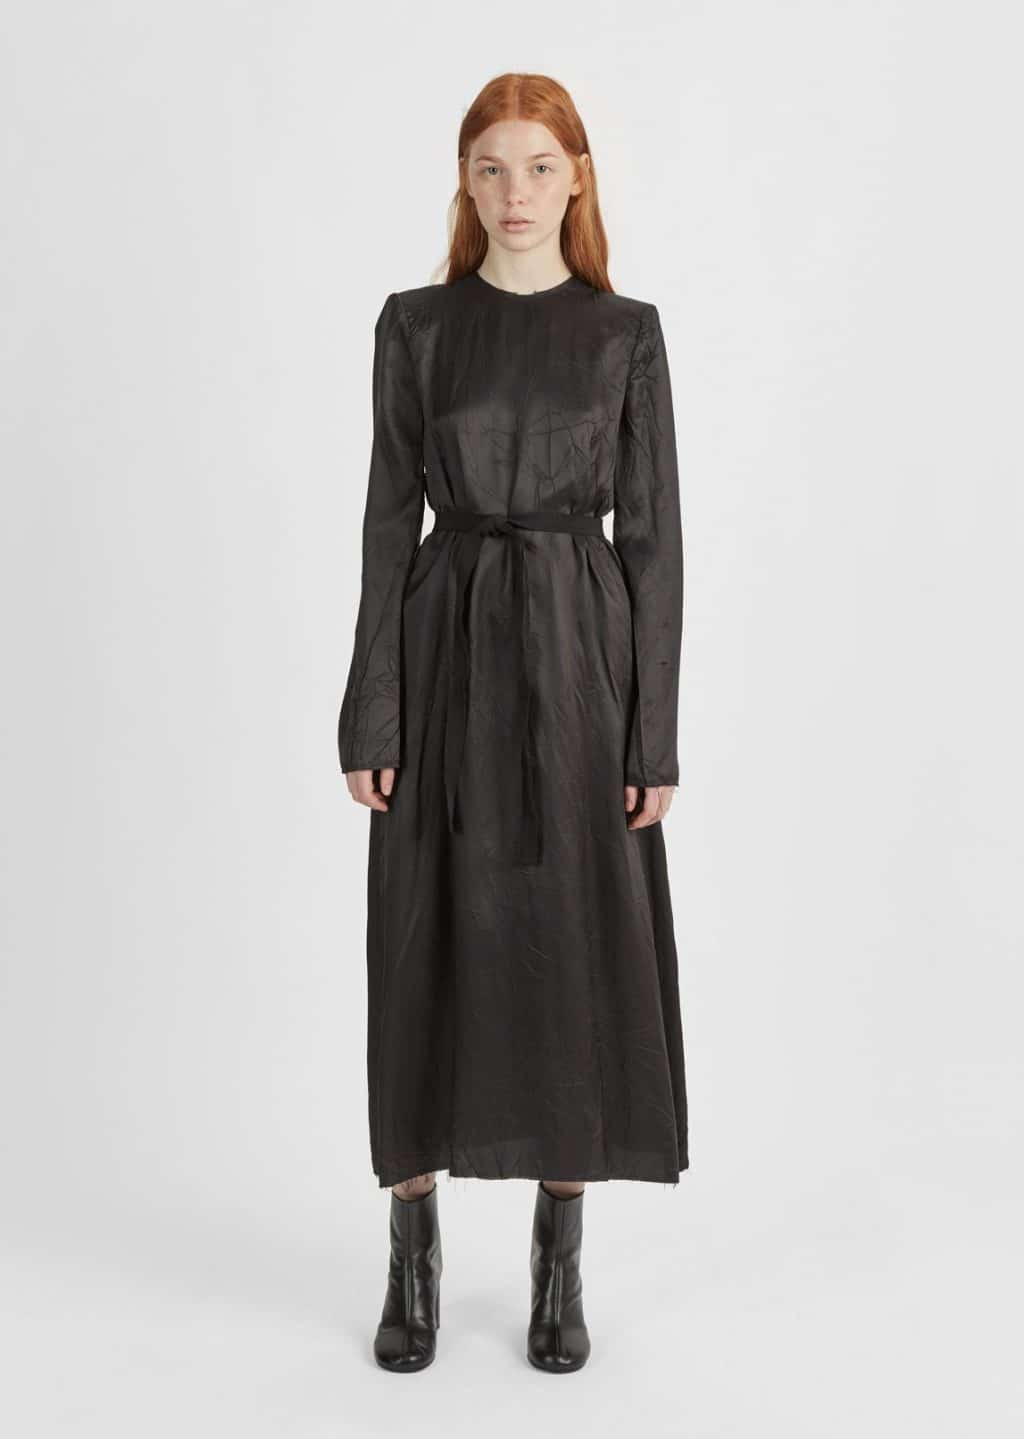 Long Sleeve Black Gowns